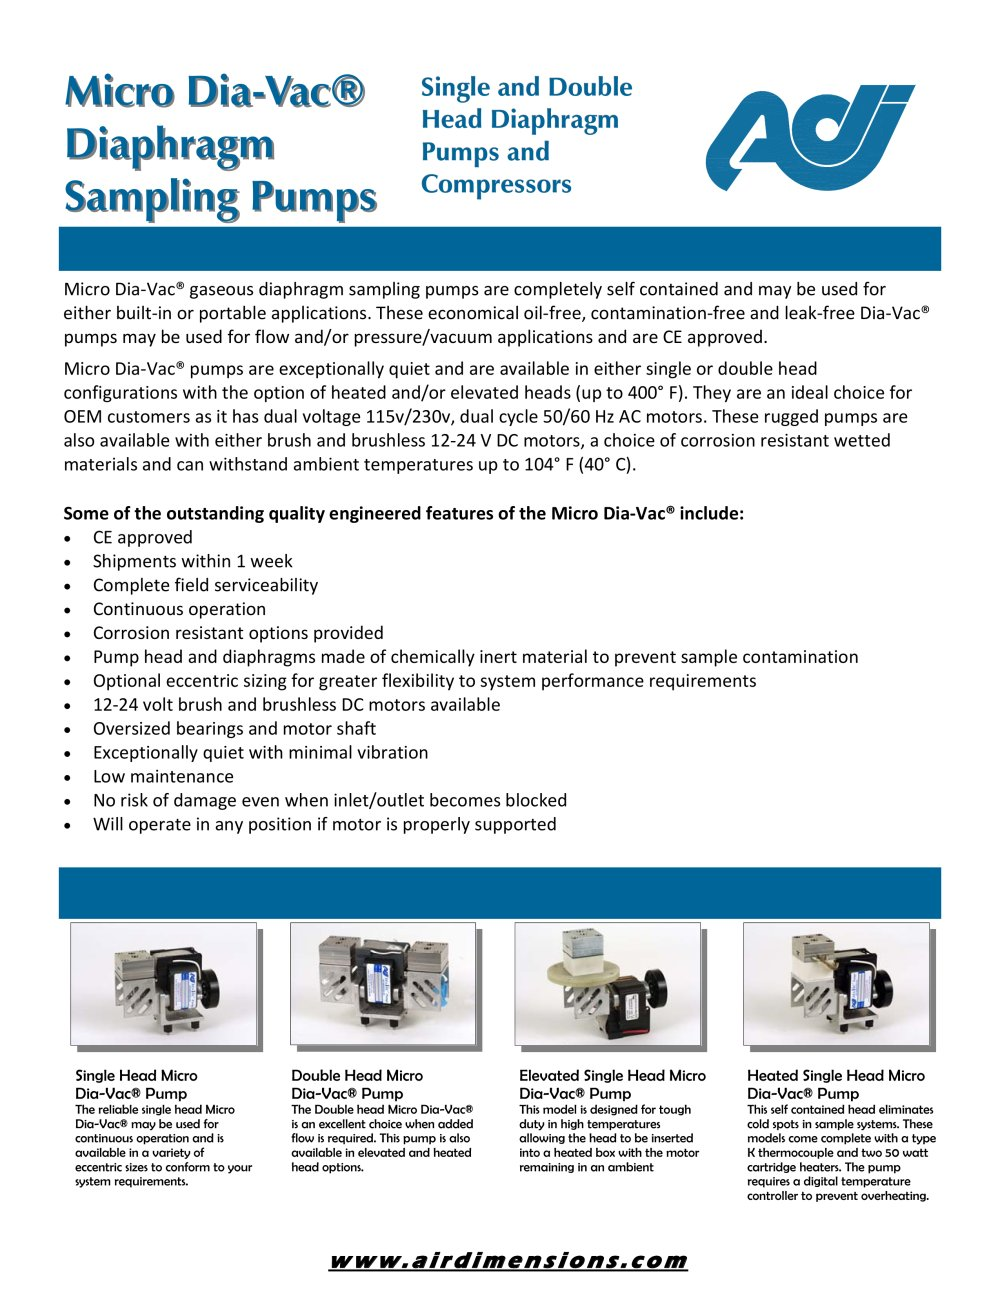 Micro dia vac diaphragm sampling pumps air dimensions incorpor micro dia vac diaphragm sampling pumps 1 2 pages ccuart Gallery